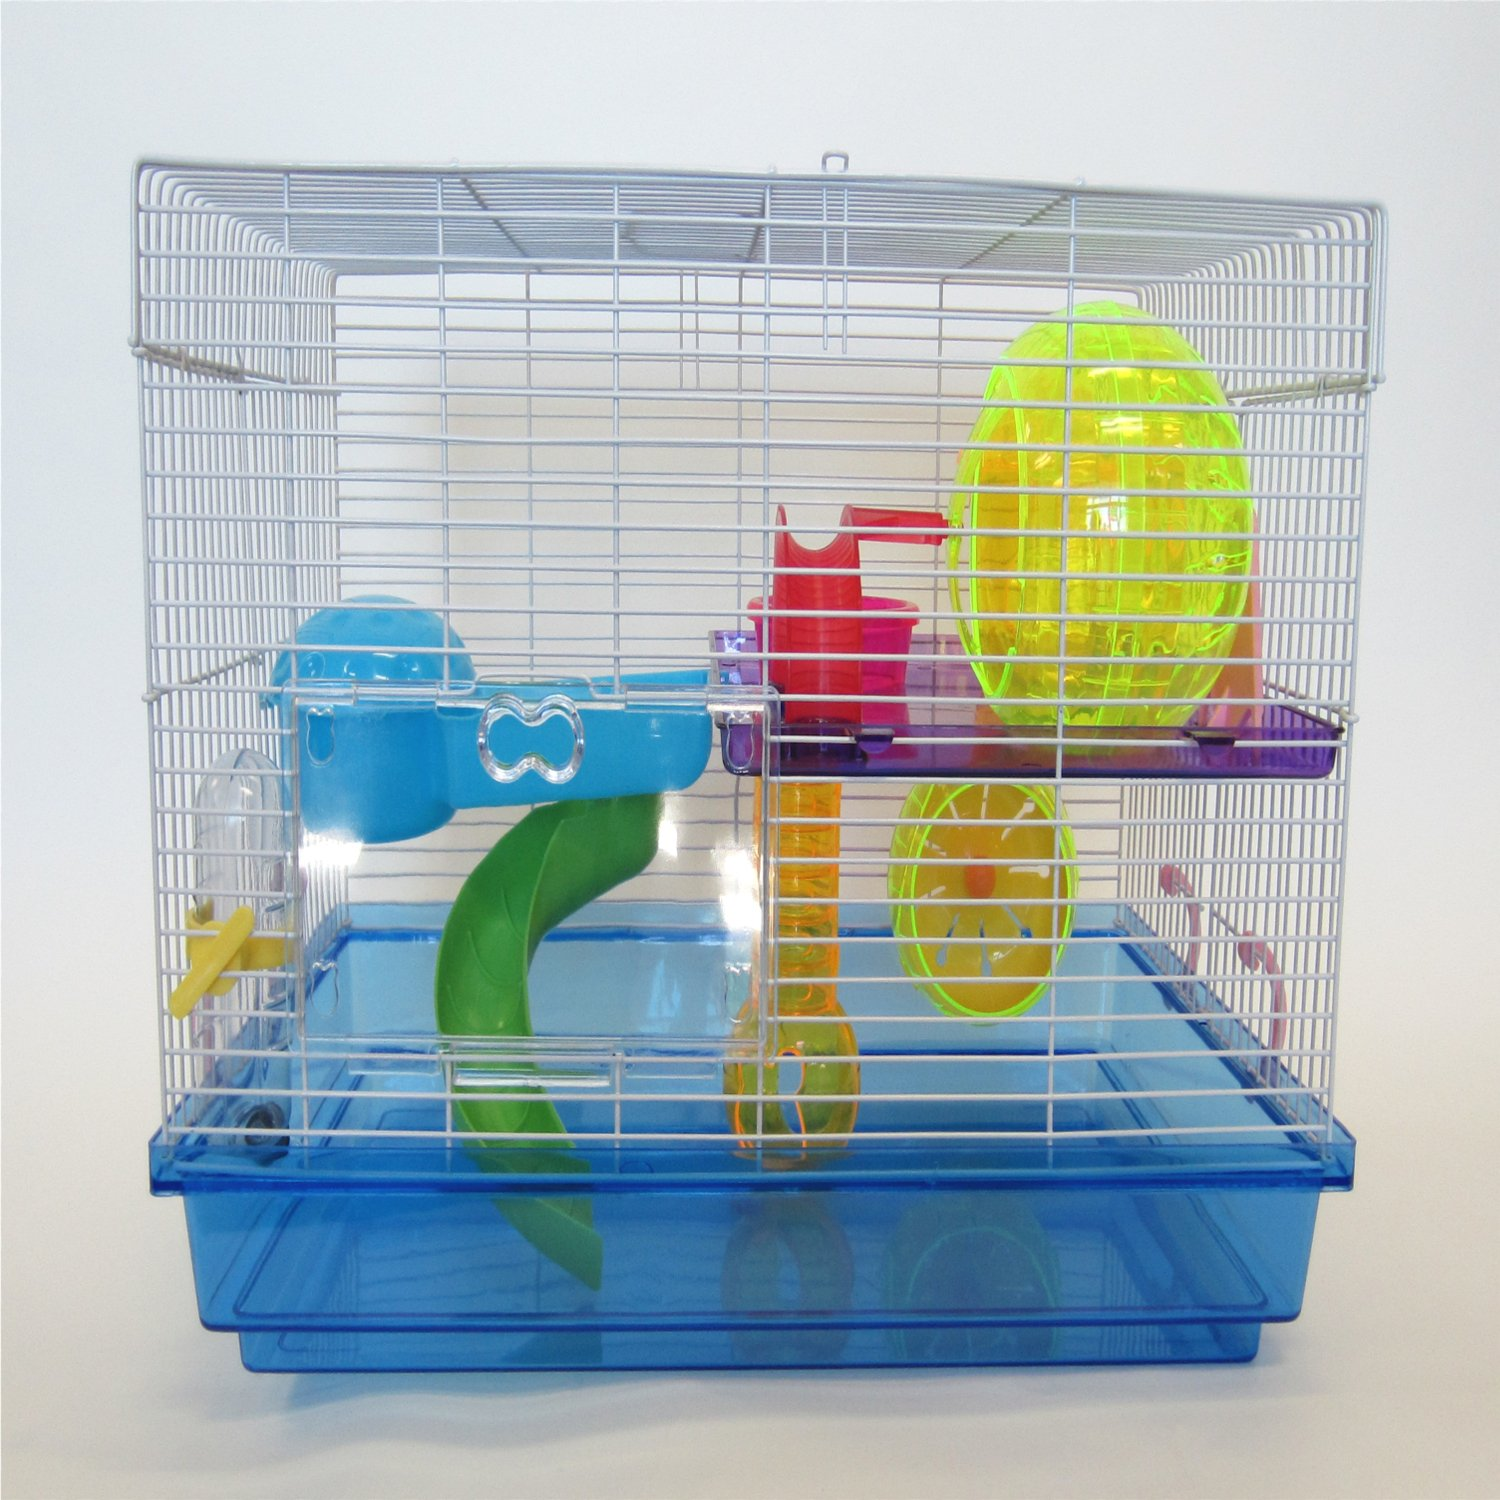 yml large hamster cage in blue petco. Black Bedroom Furniture Sets. Home Design Ideas